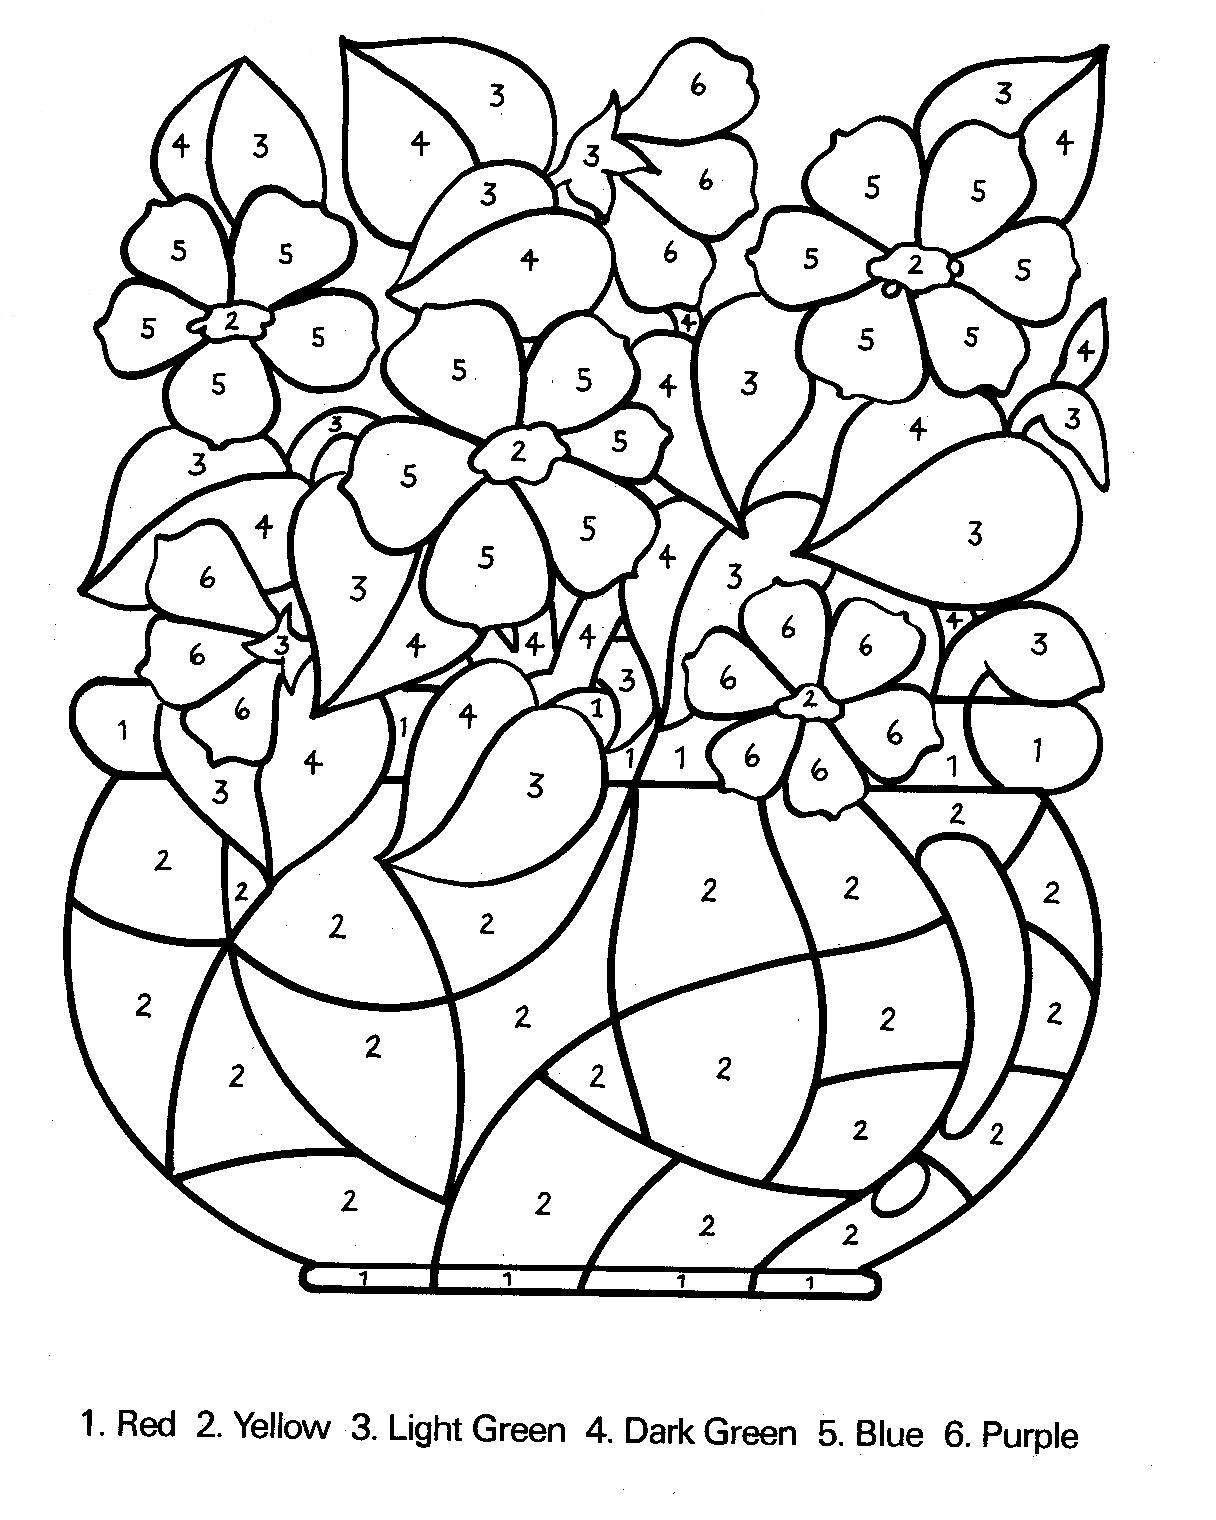 Coloring printouts flowers - Number Flowers Coloring Sheets Digg Stumbleupon Del Icio Us Twitter Technorati